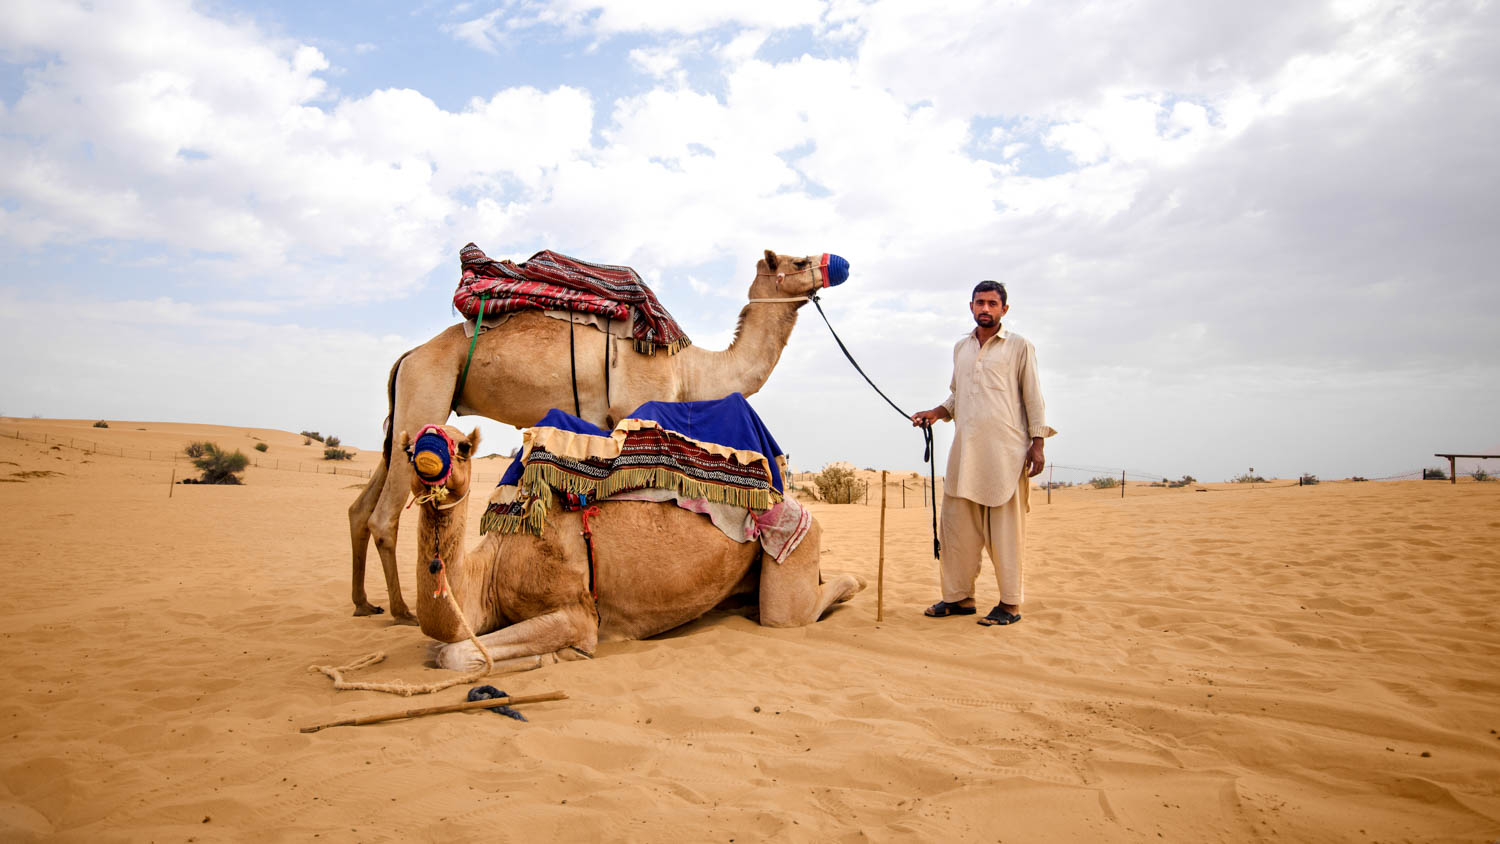 Ride camels and horses